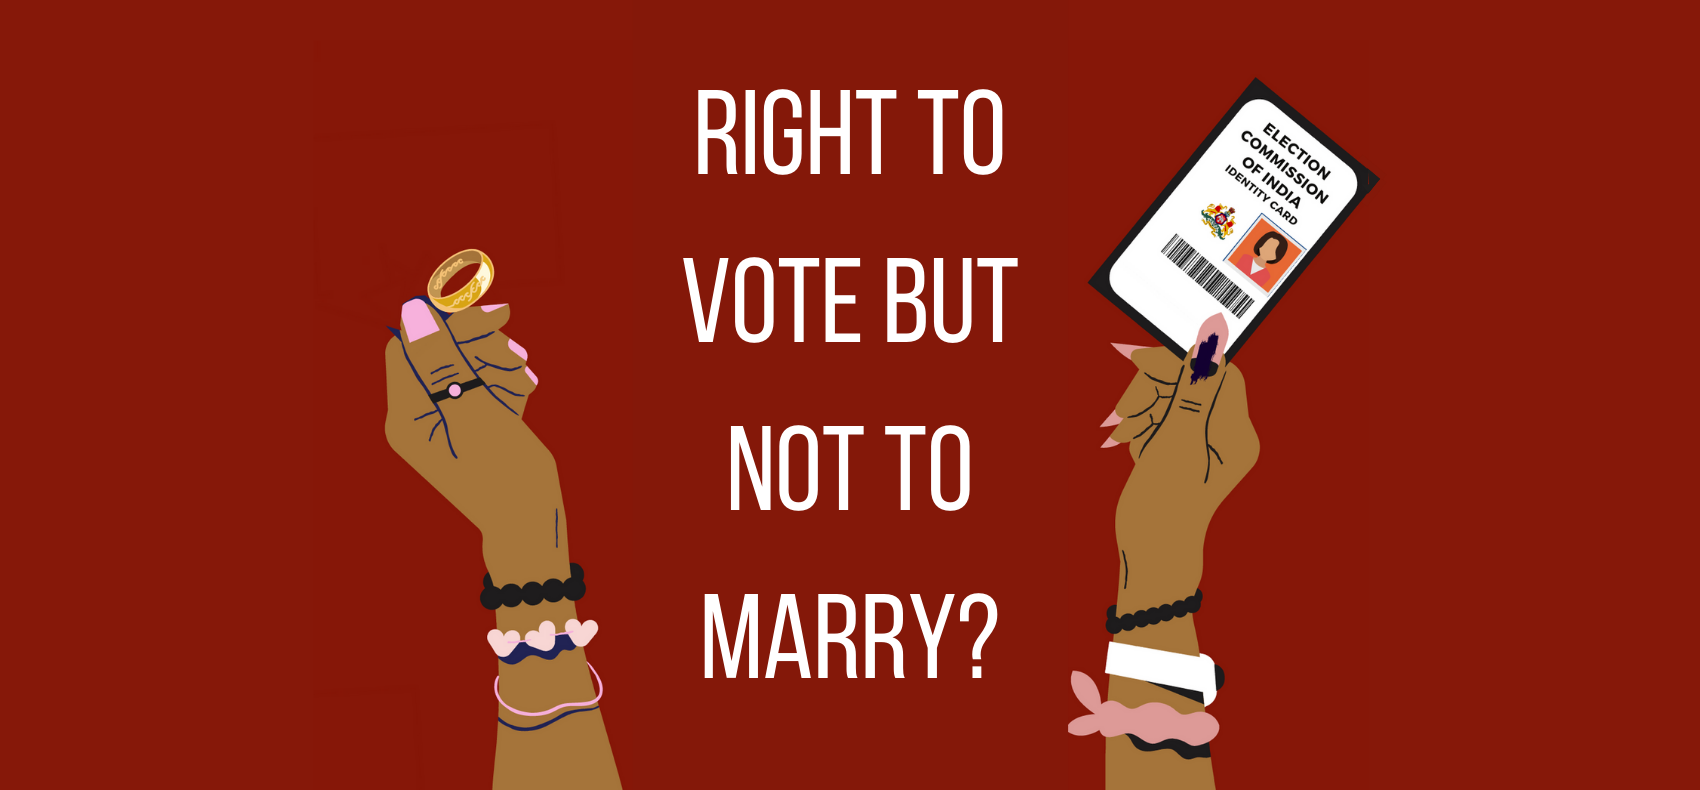 Right to Vote But Not to Marry?: Analyzing the Proposed Increase in the Minimum Marriage Age for Women in India